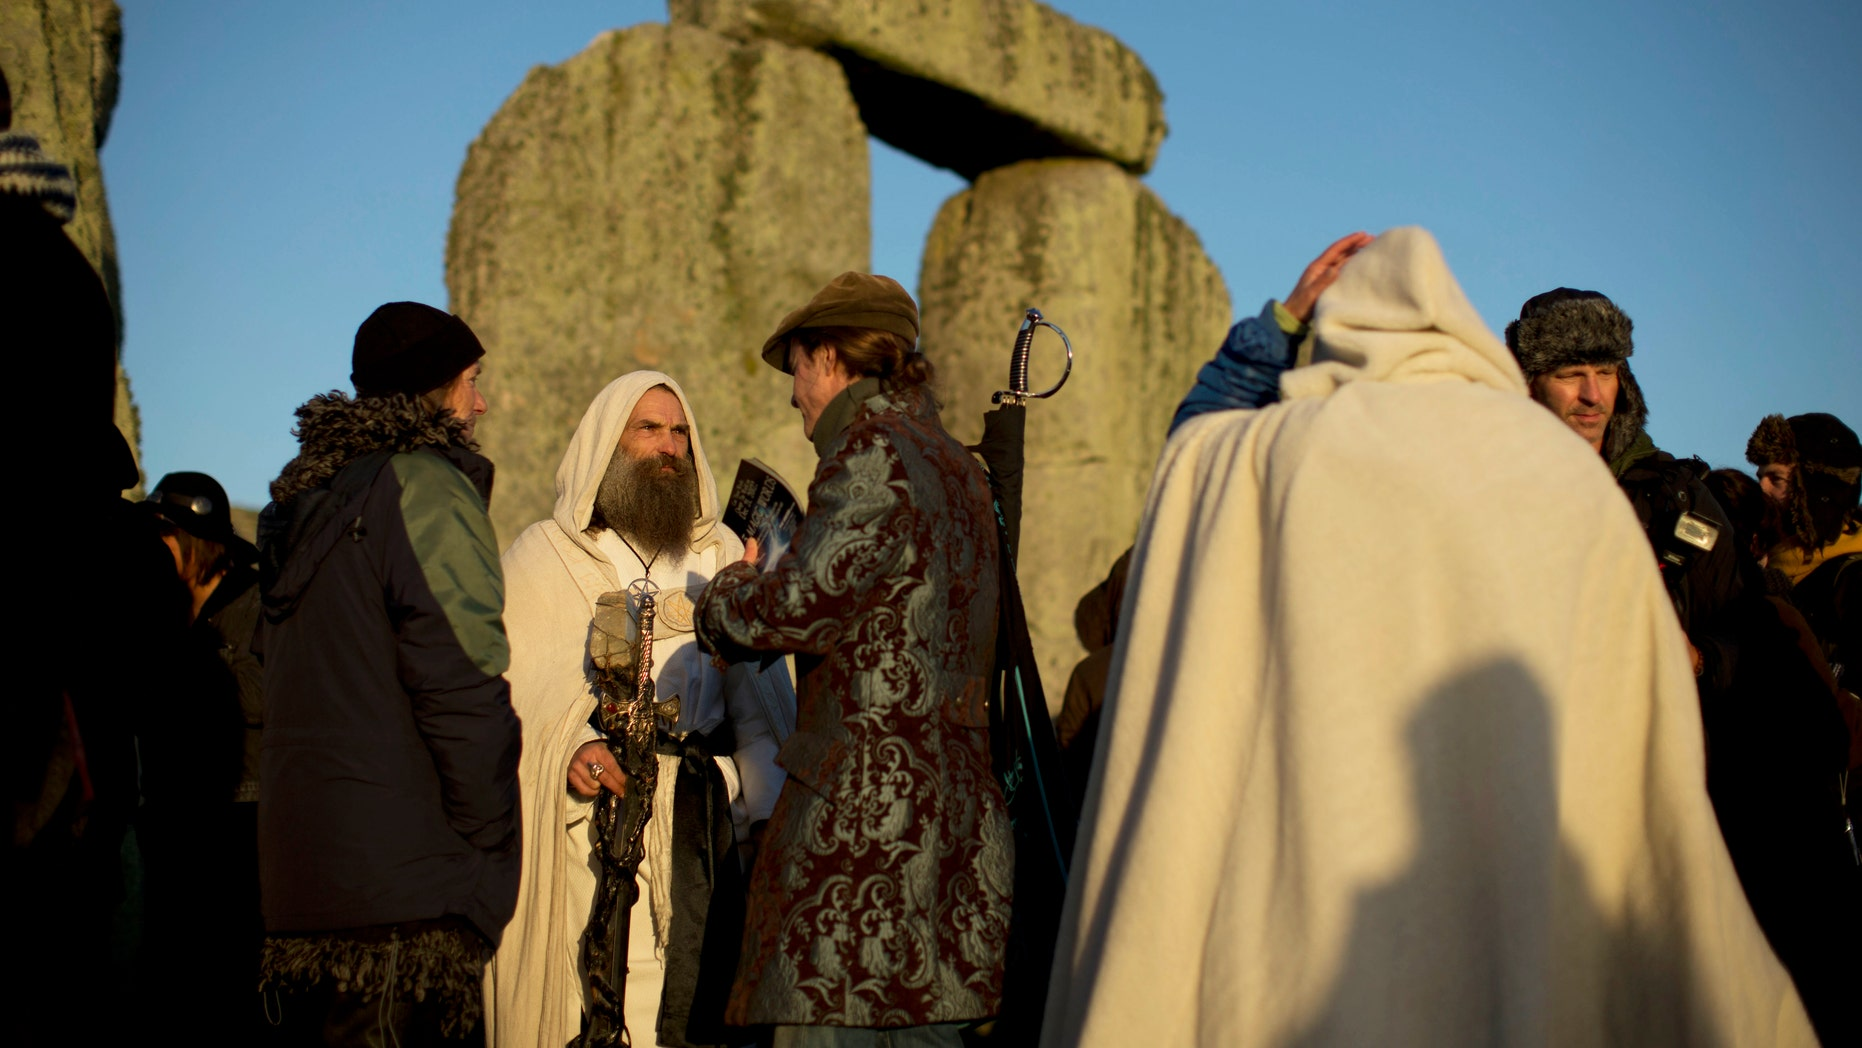 December 21, 2012: A Druid stands after sunrise at the old stone circle of Stonehenge.